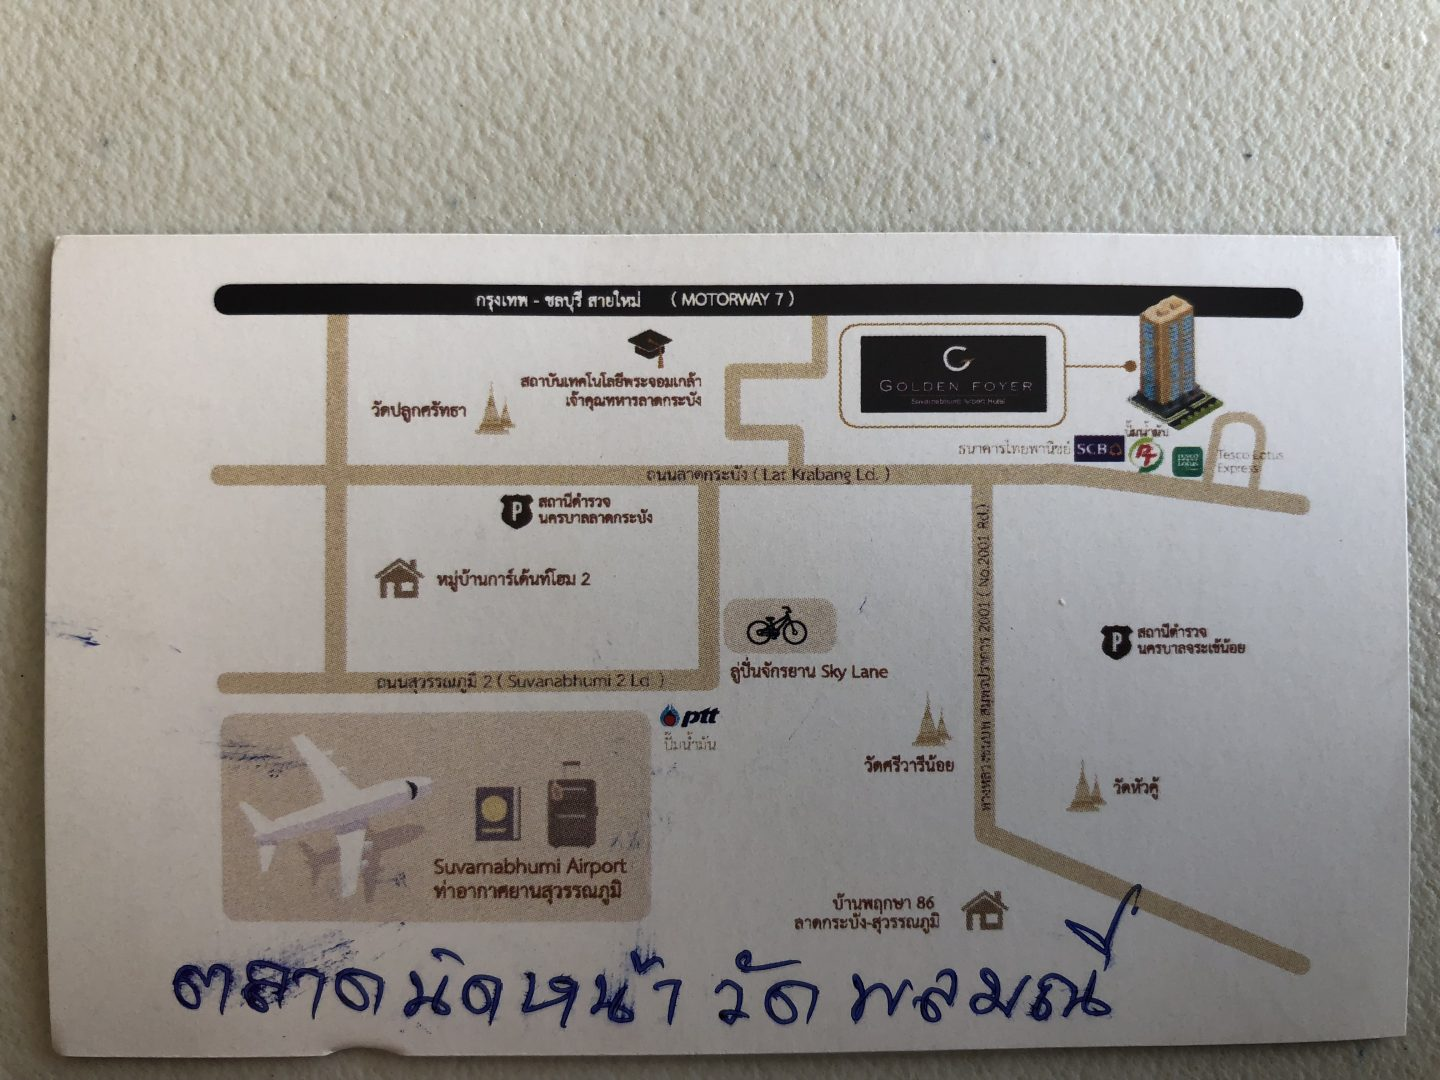 Golden Foyer Suvarnabhumi Airport Hotel - Bangkok - BKK - Best Hotel - Map